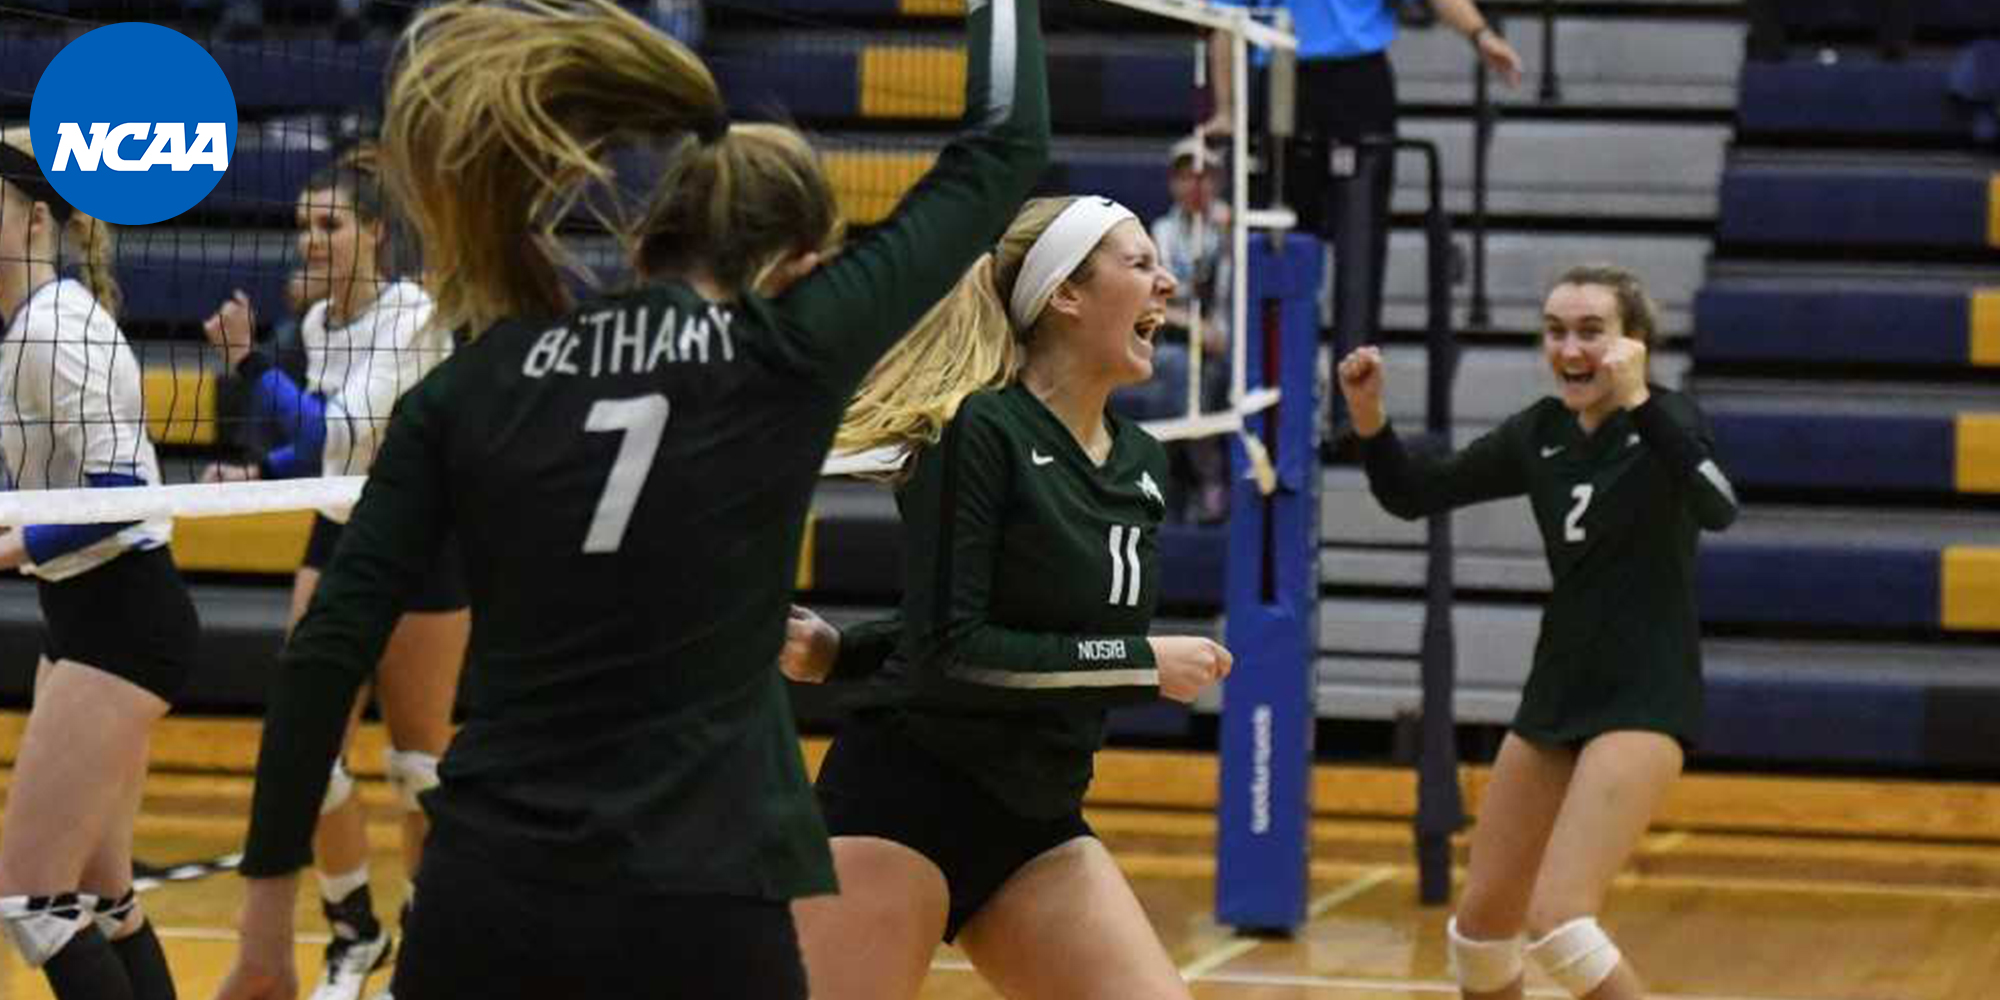 Bethany Falls, 3-1, in Opening Round of NCAA to Christopher Newport